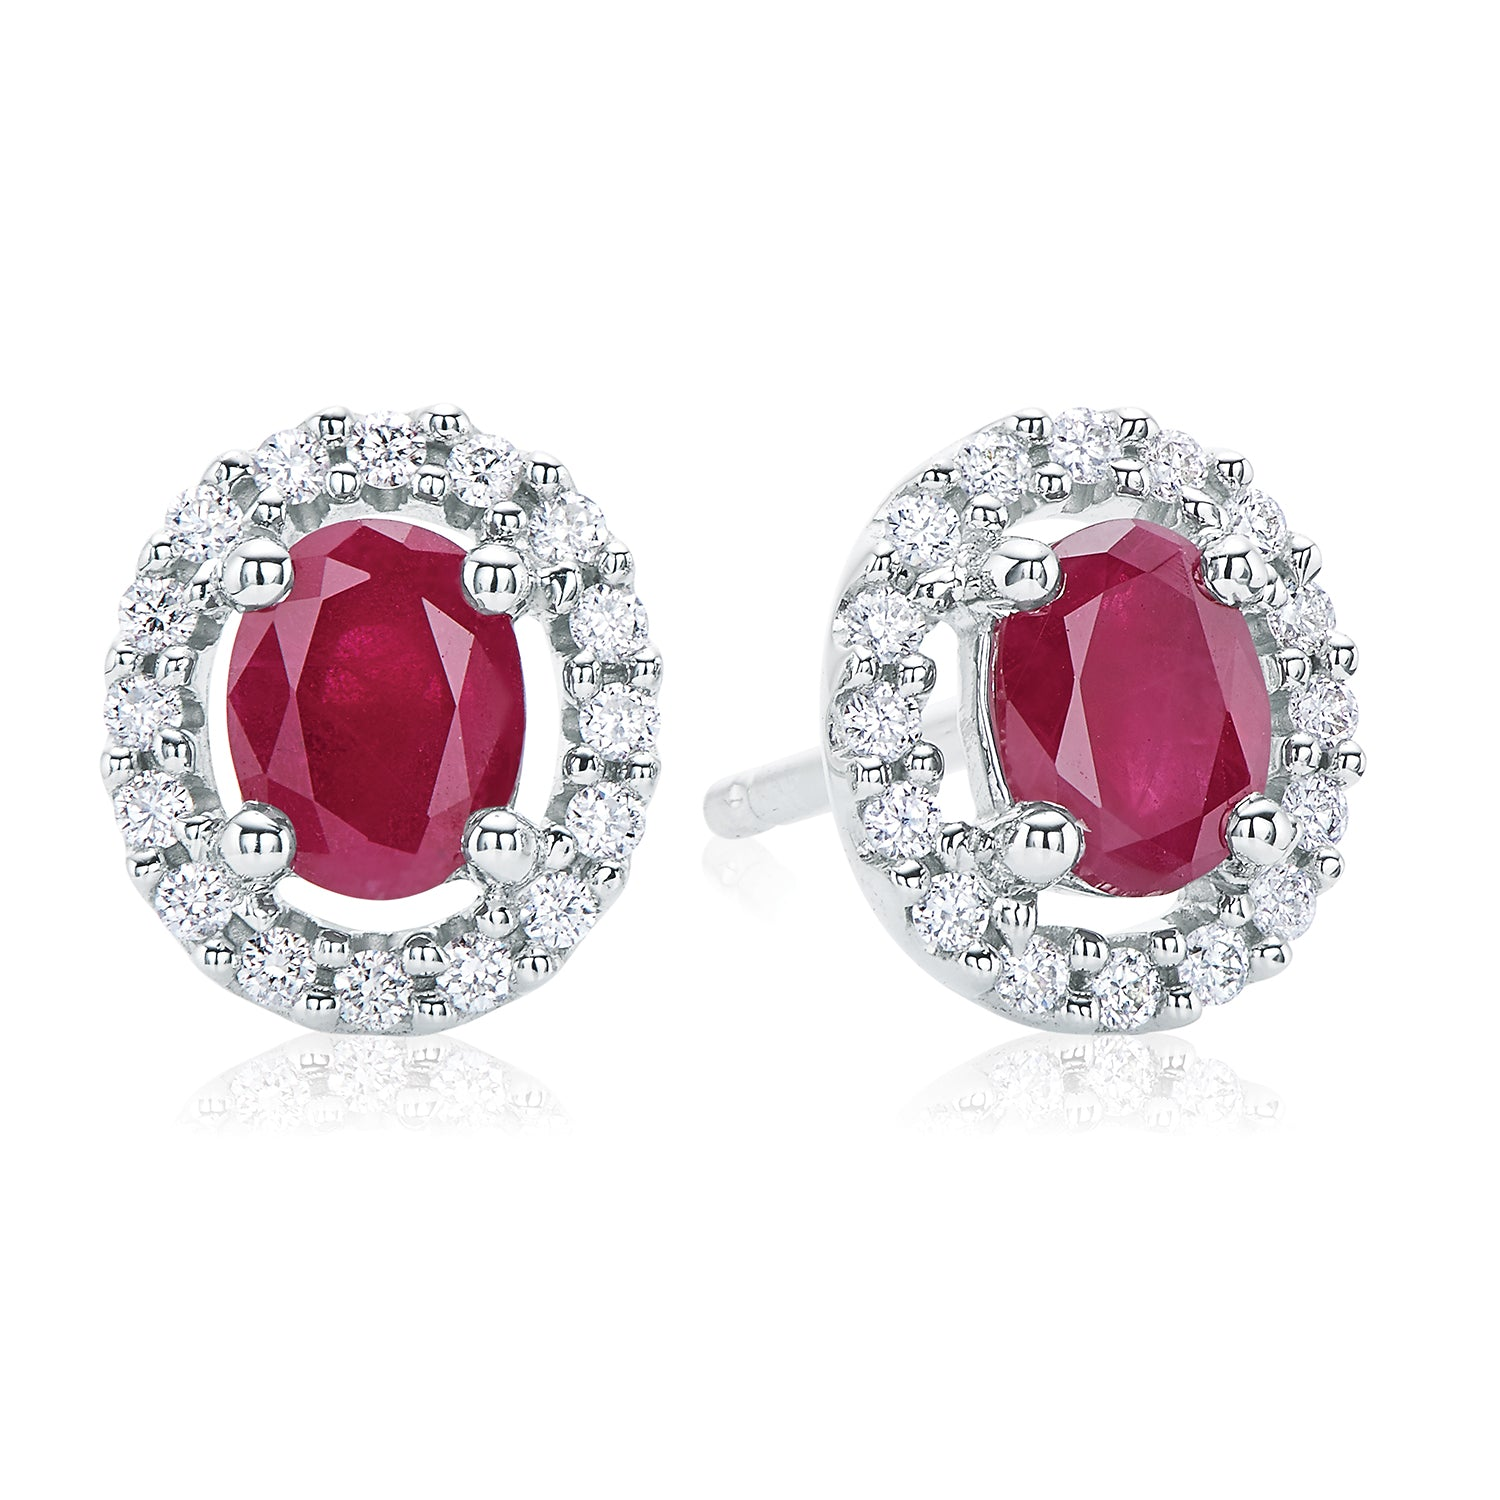 18ct White Gold Oval Cut Ruby with 0.15 CARAT tw of Diamonds